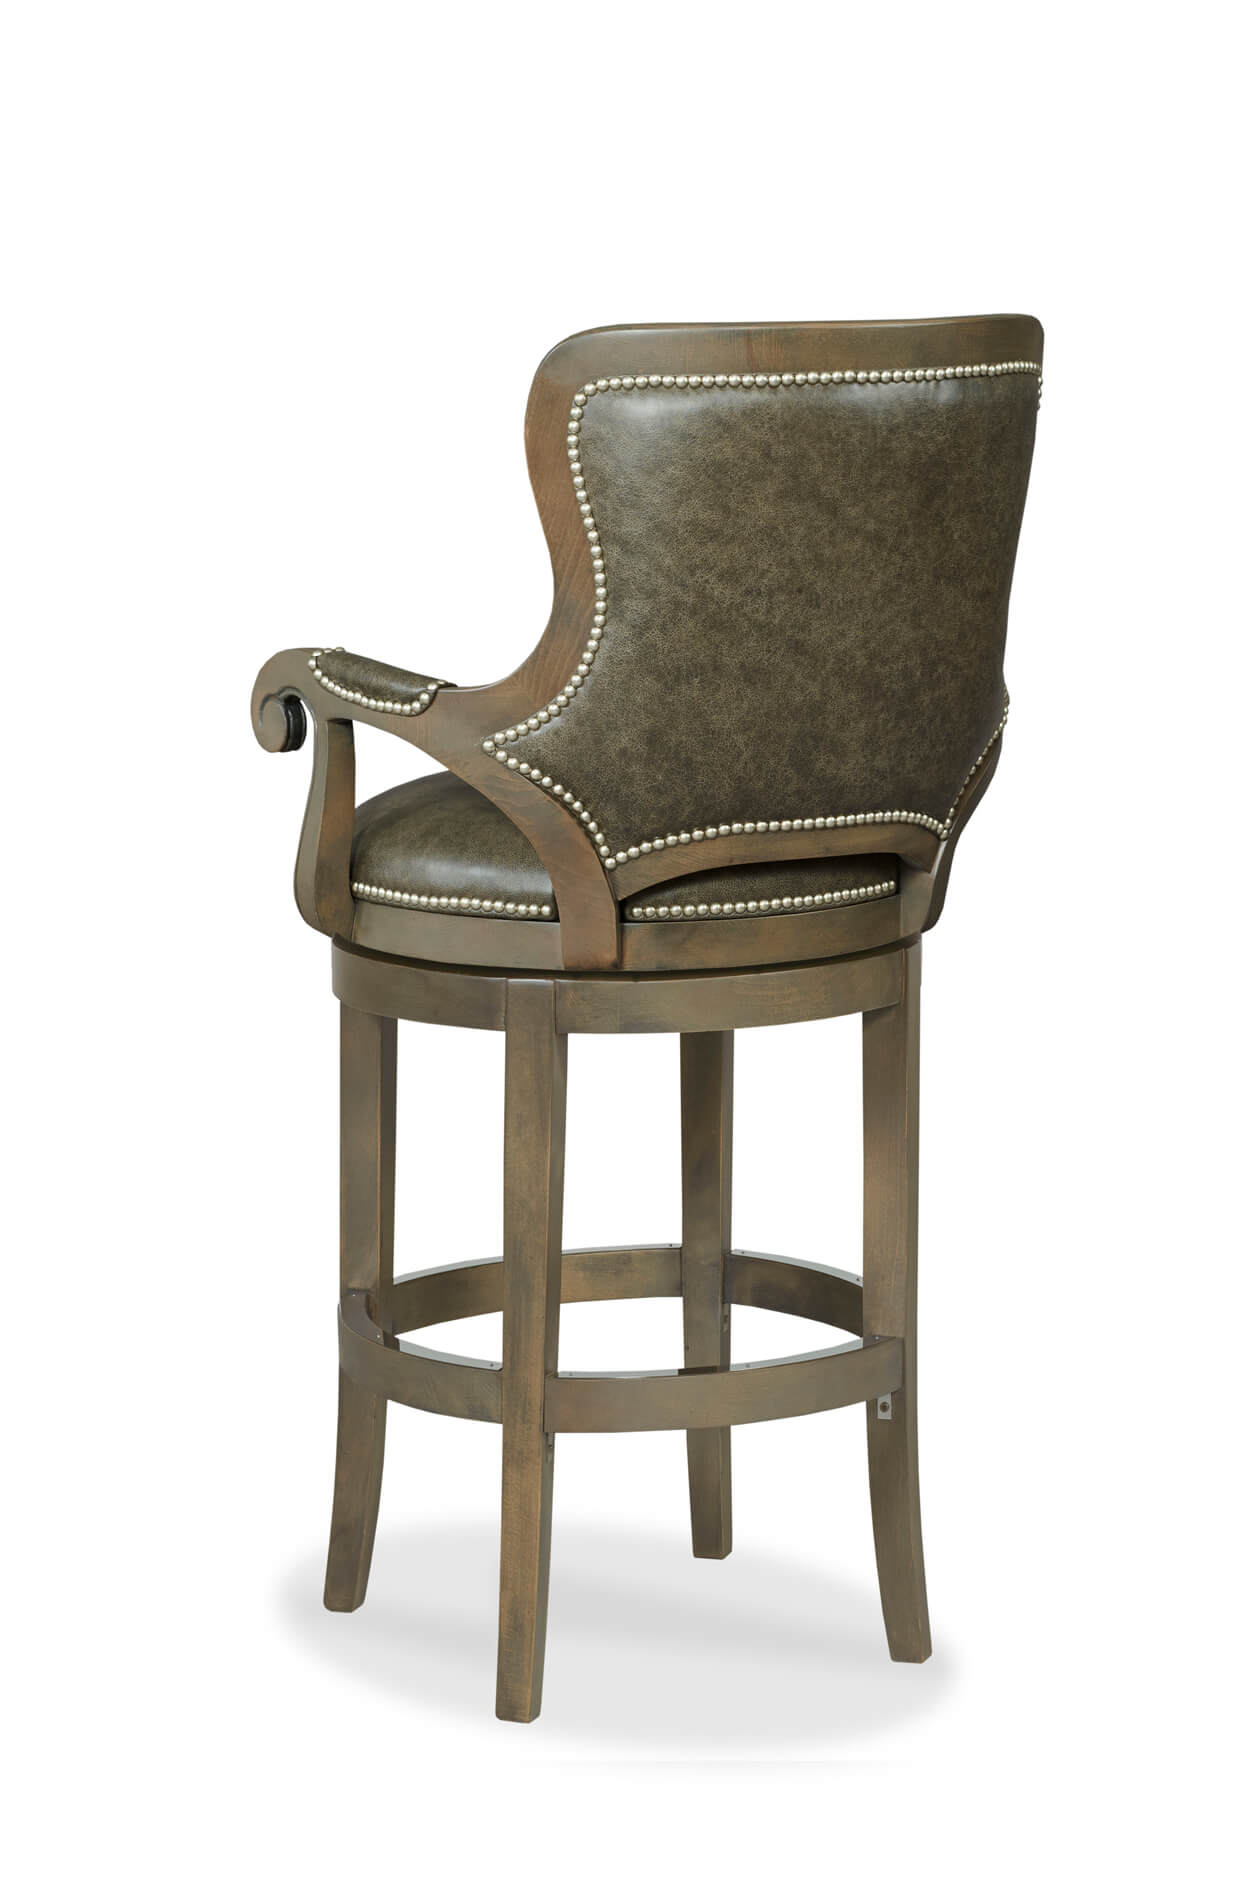 Astounding Spritzer Wooden Upholstered Swivel Stool With Arms Camellatalisay Diy Chair Ideas Camellatalisaycom